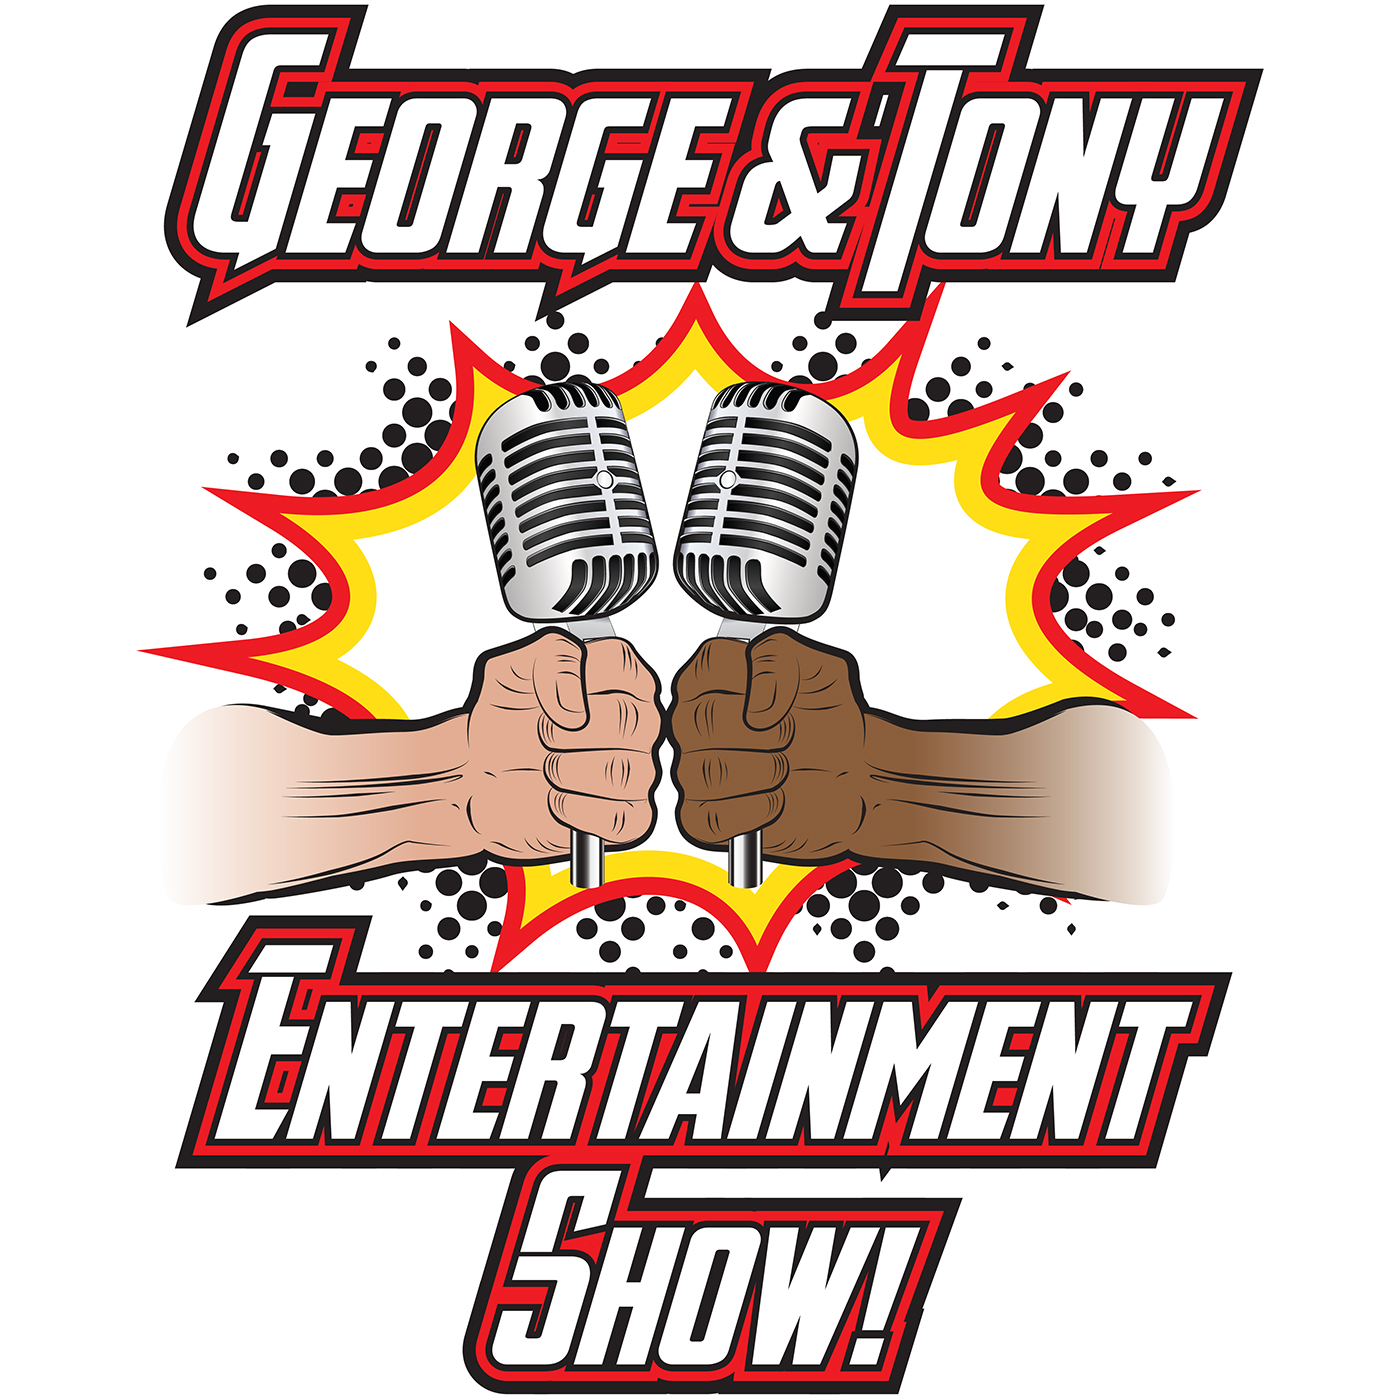 George and Tony Entertainment Show #100